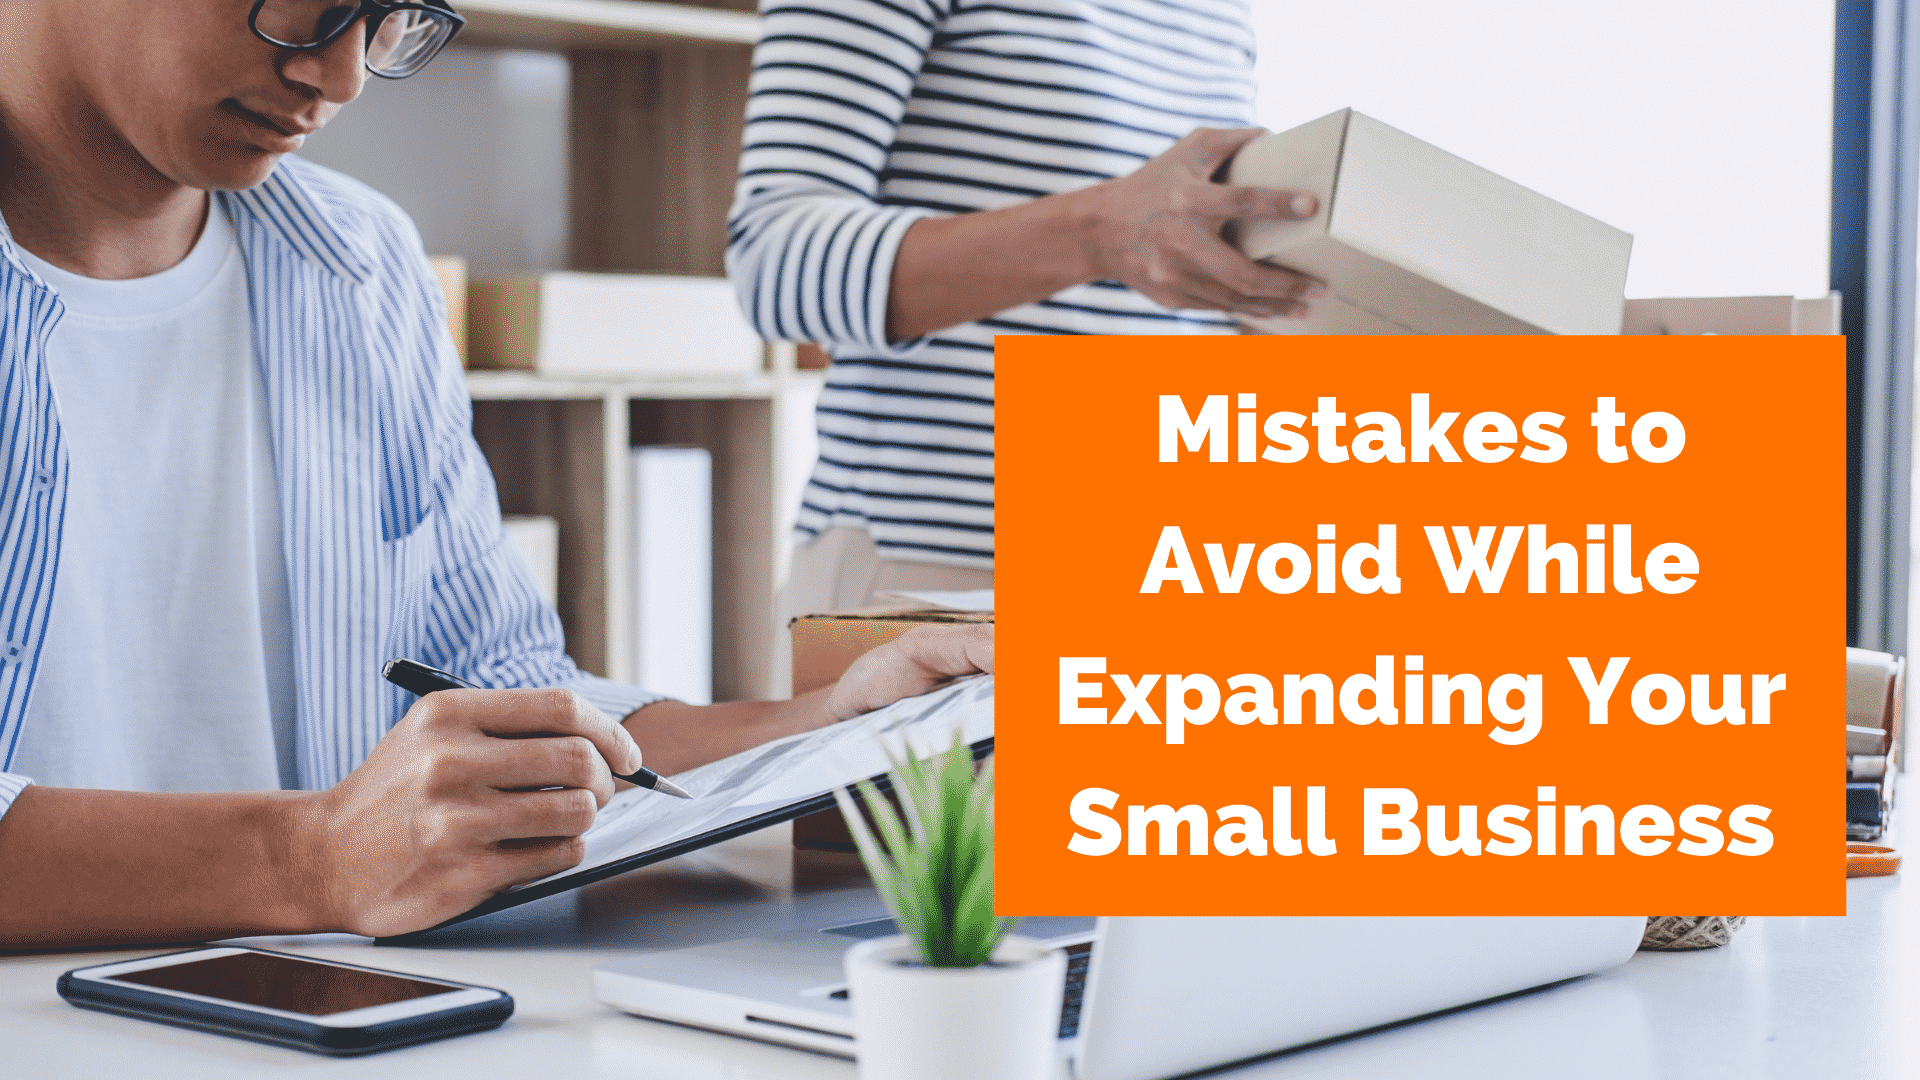 12 Mistakes to Avoid While Expanding Your Small Business